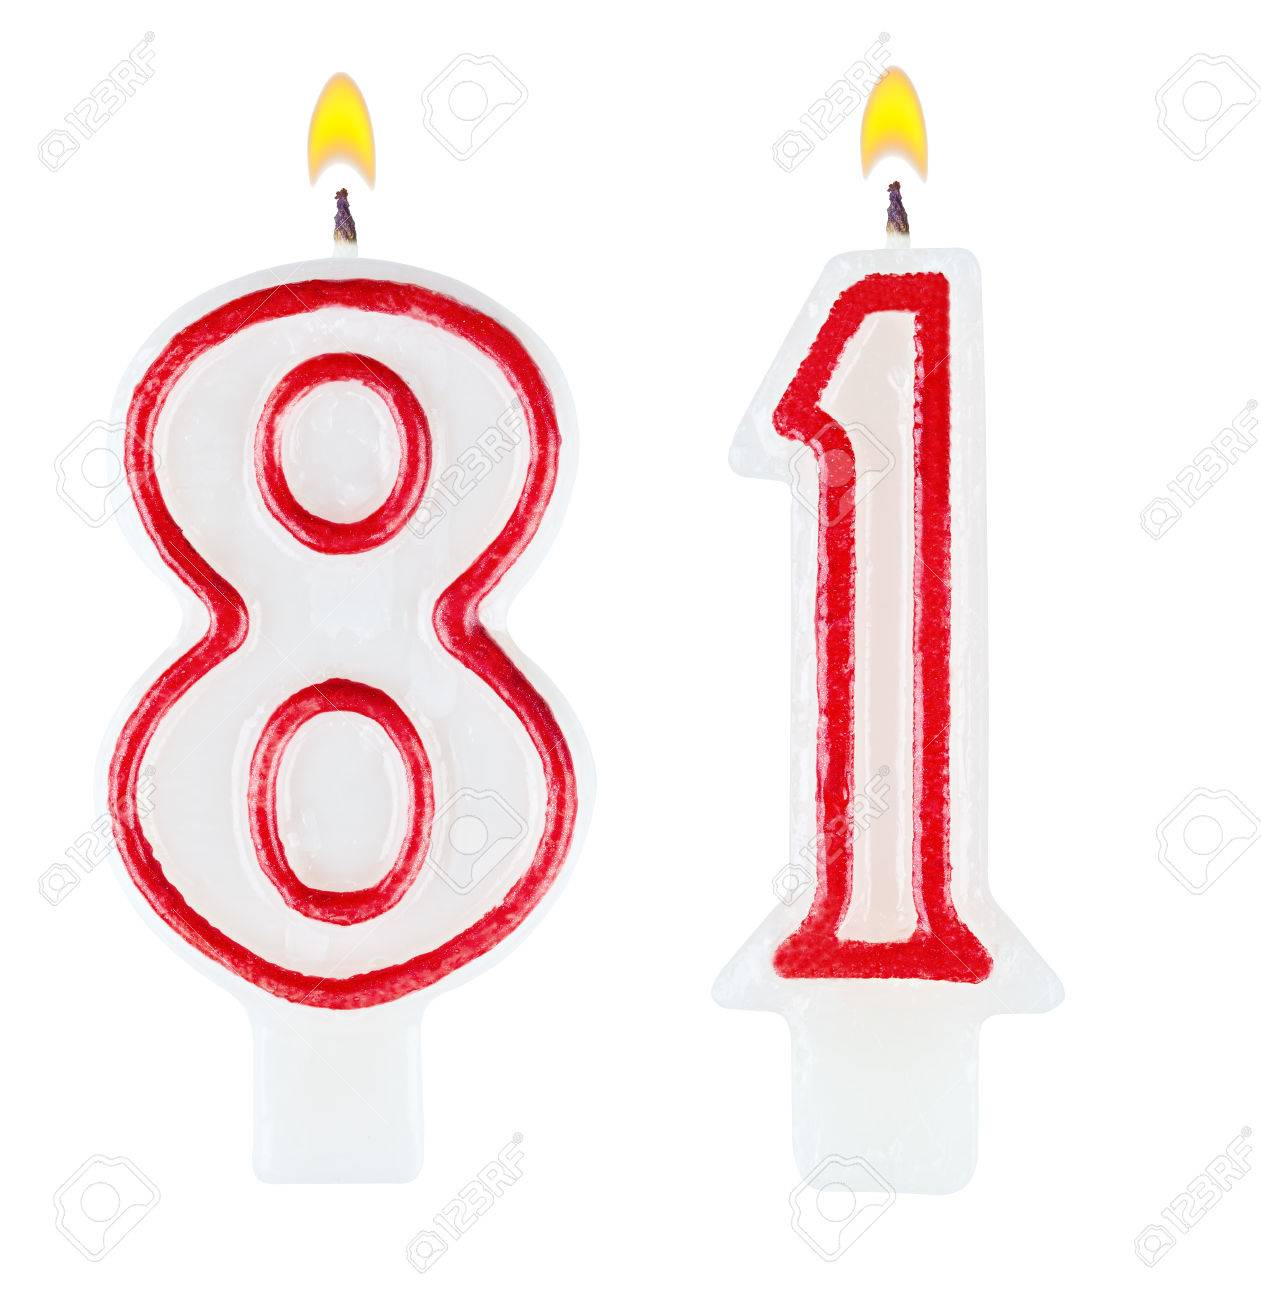 Birthday Candles Number Eighty One Isolated On White Background Stock Photo